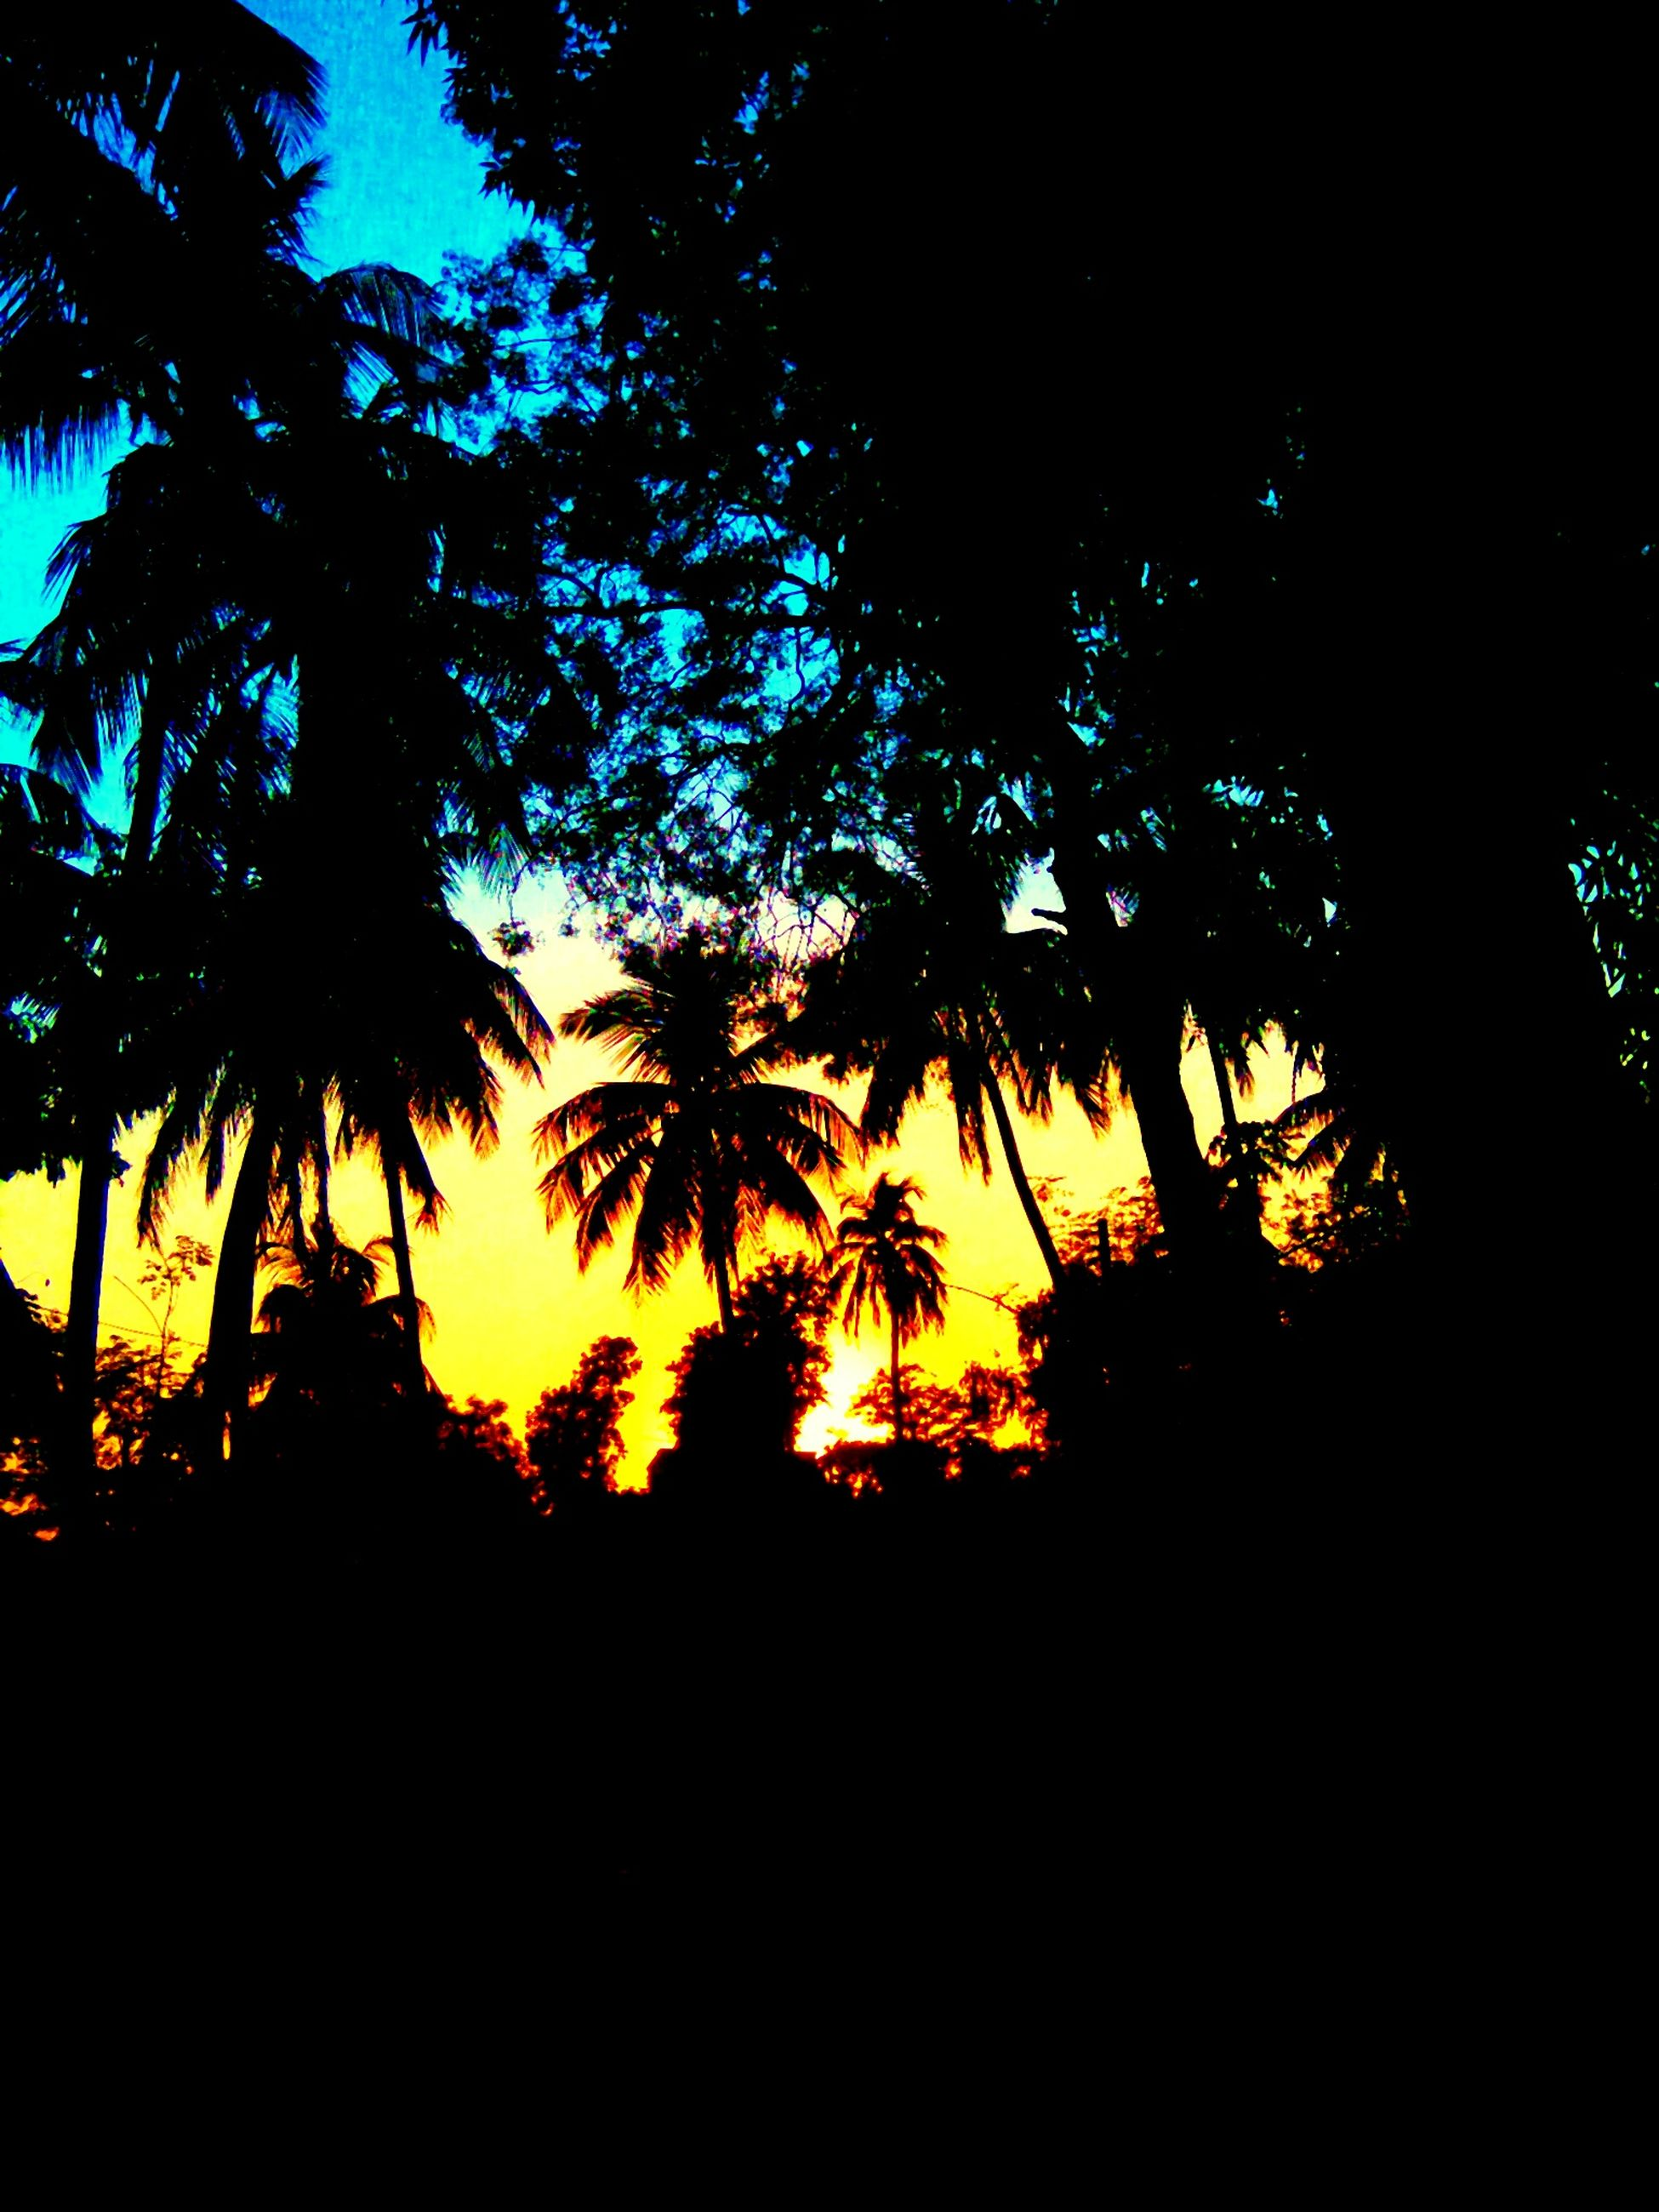 silhouette, tree, sunset, beauty in nature, tranquility, scenics, growth, tranquil scene, sky, low angle view, nature, branch, idyllic, dark, orange color, palm tree, outdoors, no people, outline, dusk